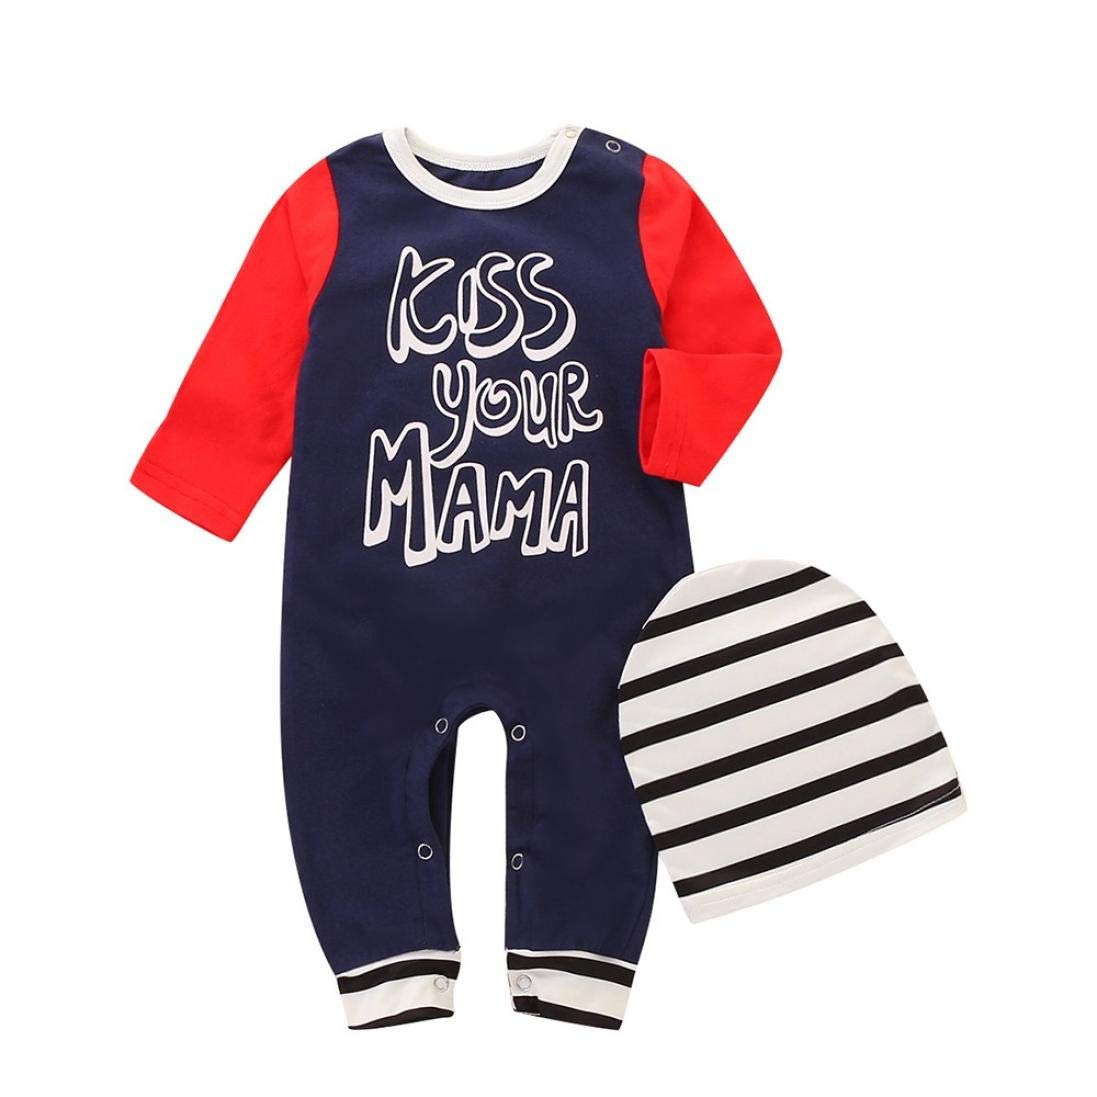 Zerototens Newborn Clothes Toddler Infant Baby Boys Girls Long Sleeve Letter Print Patchwork Romper Jumpsuit and Hat Autumn Winter Casual Outfit Clothes 0-2 Years Old